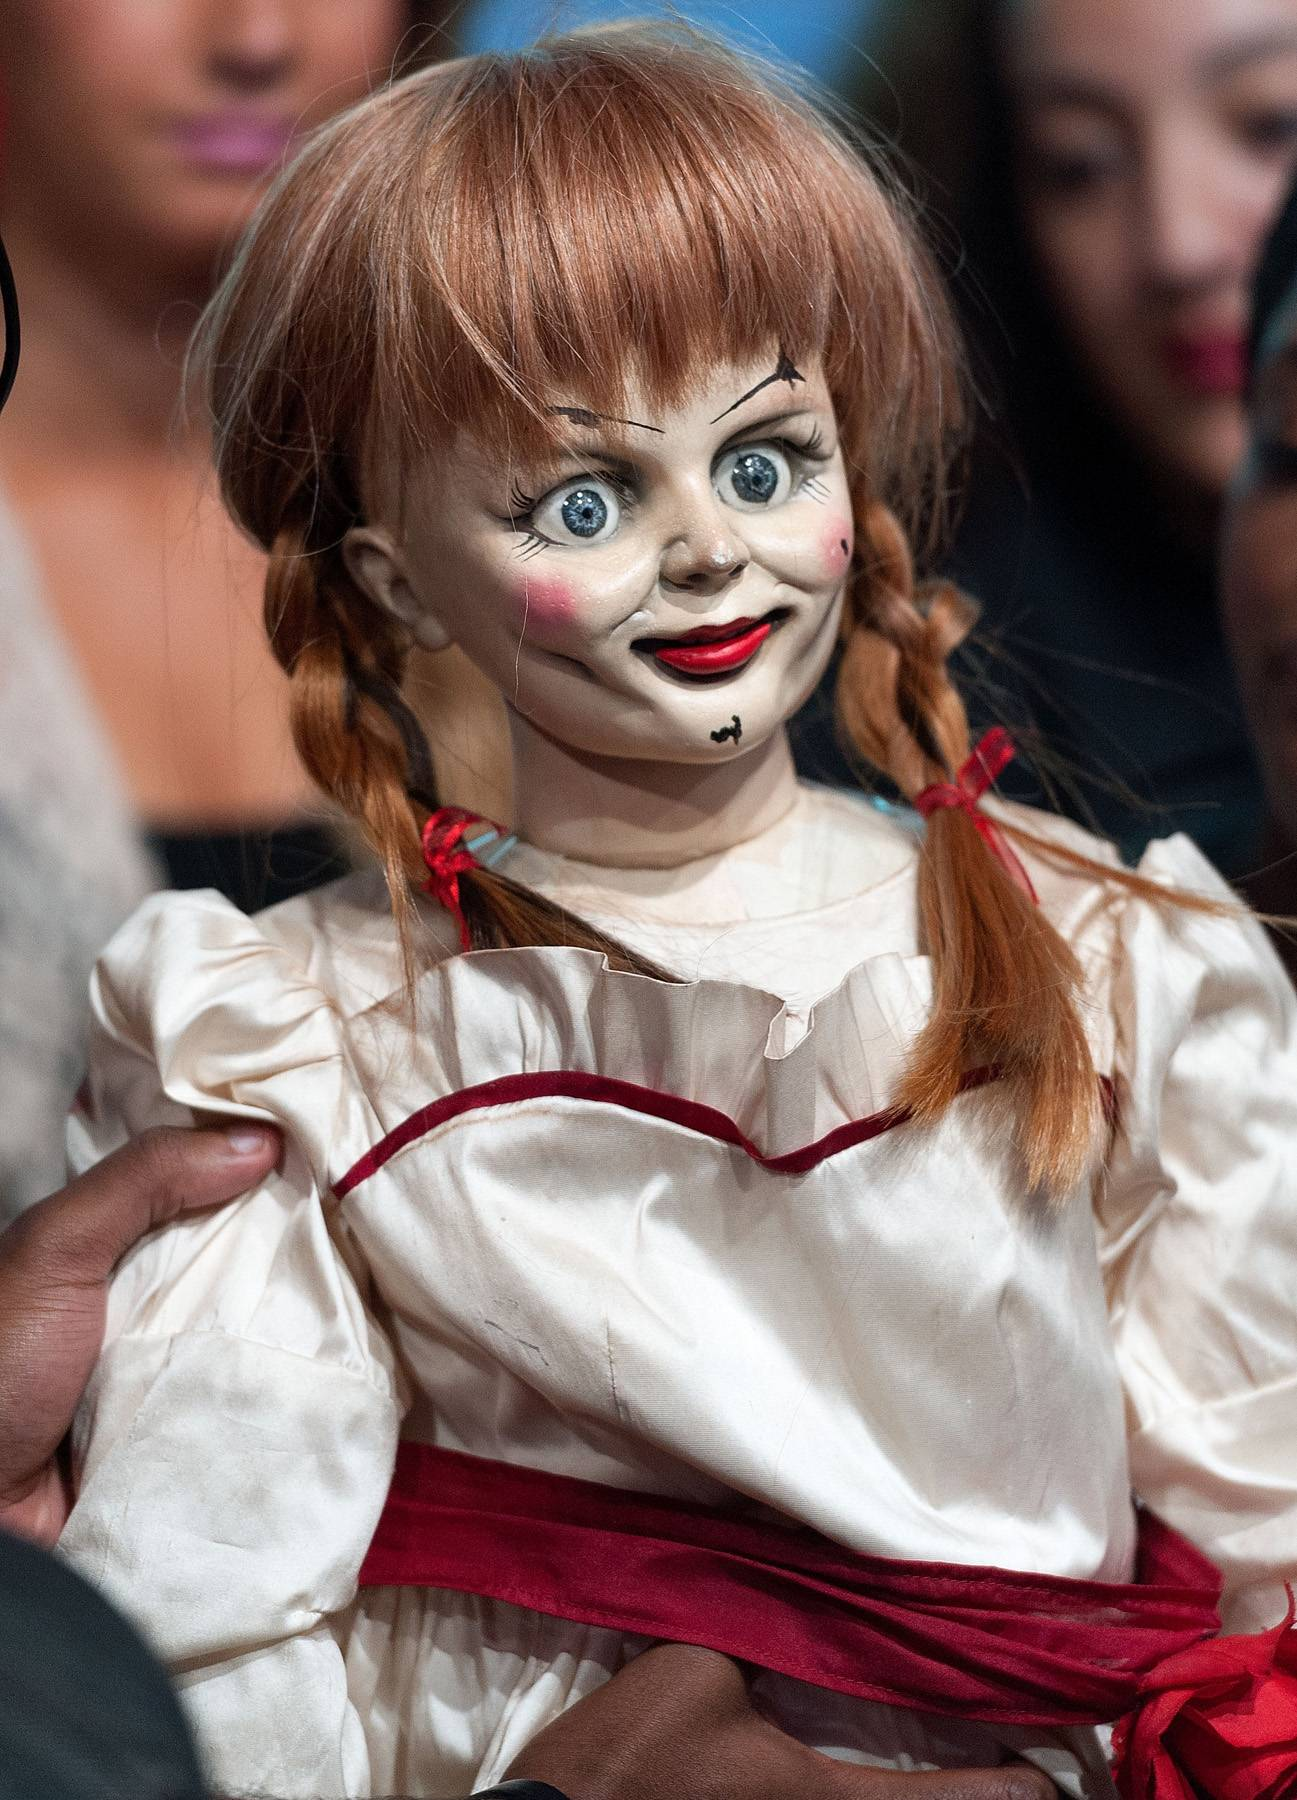 Our Favorite Doll - (Photo: D Dipasupil/BET/Getty Images)